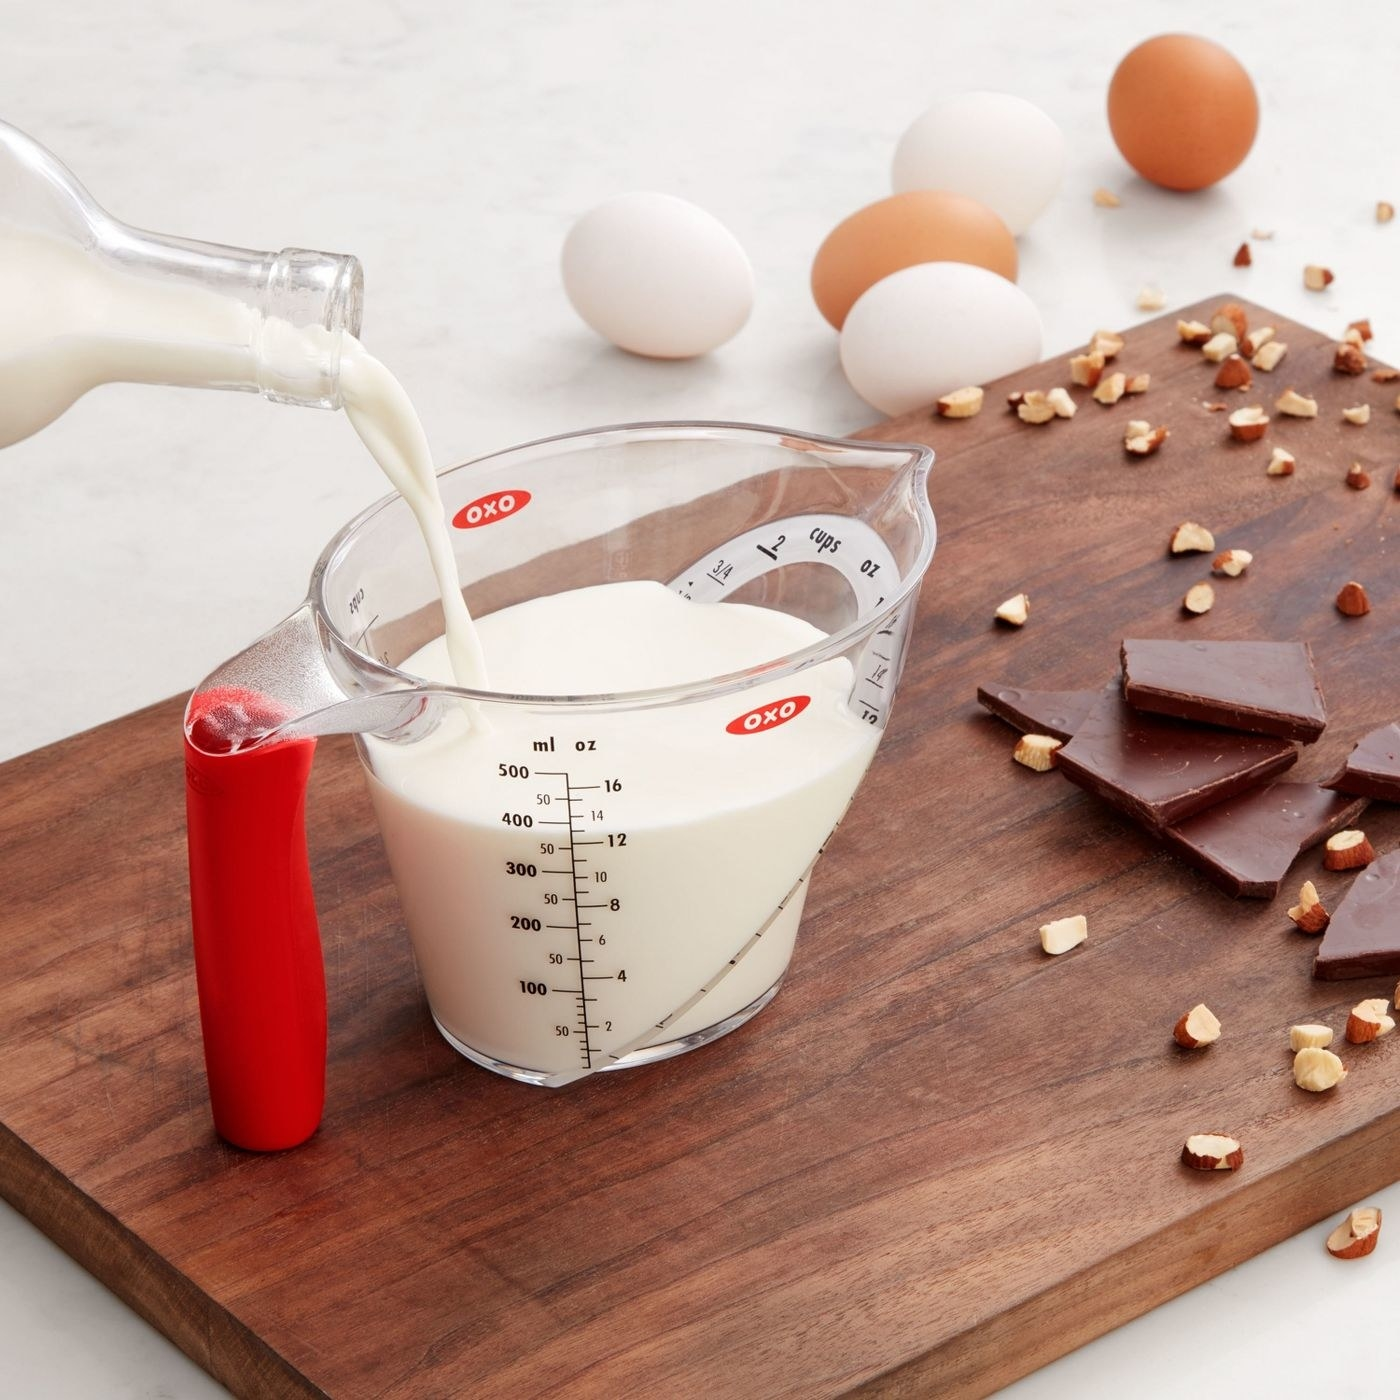 person pouring milk into an angled measuring cup